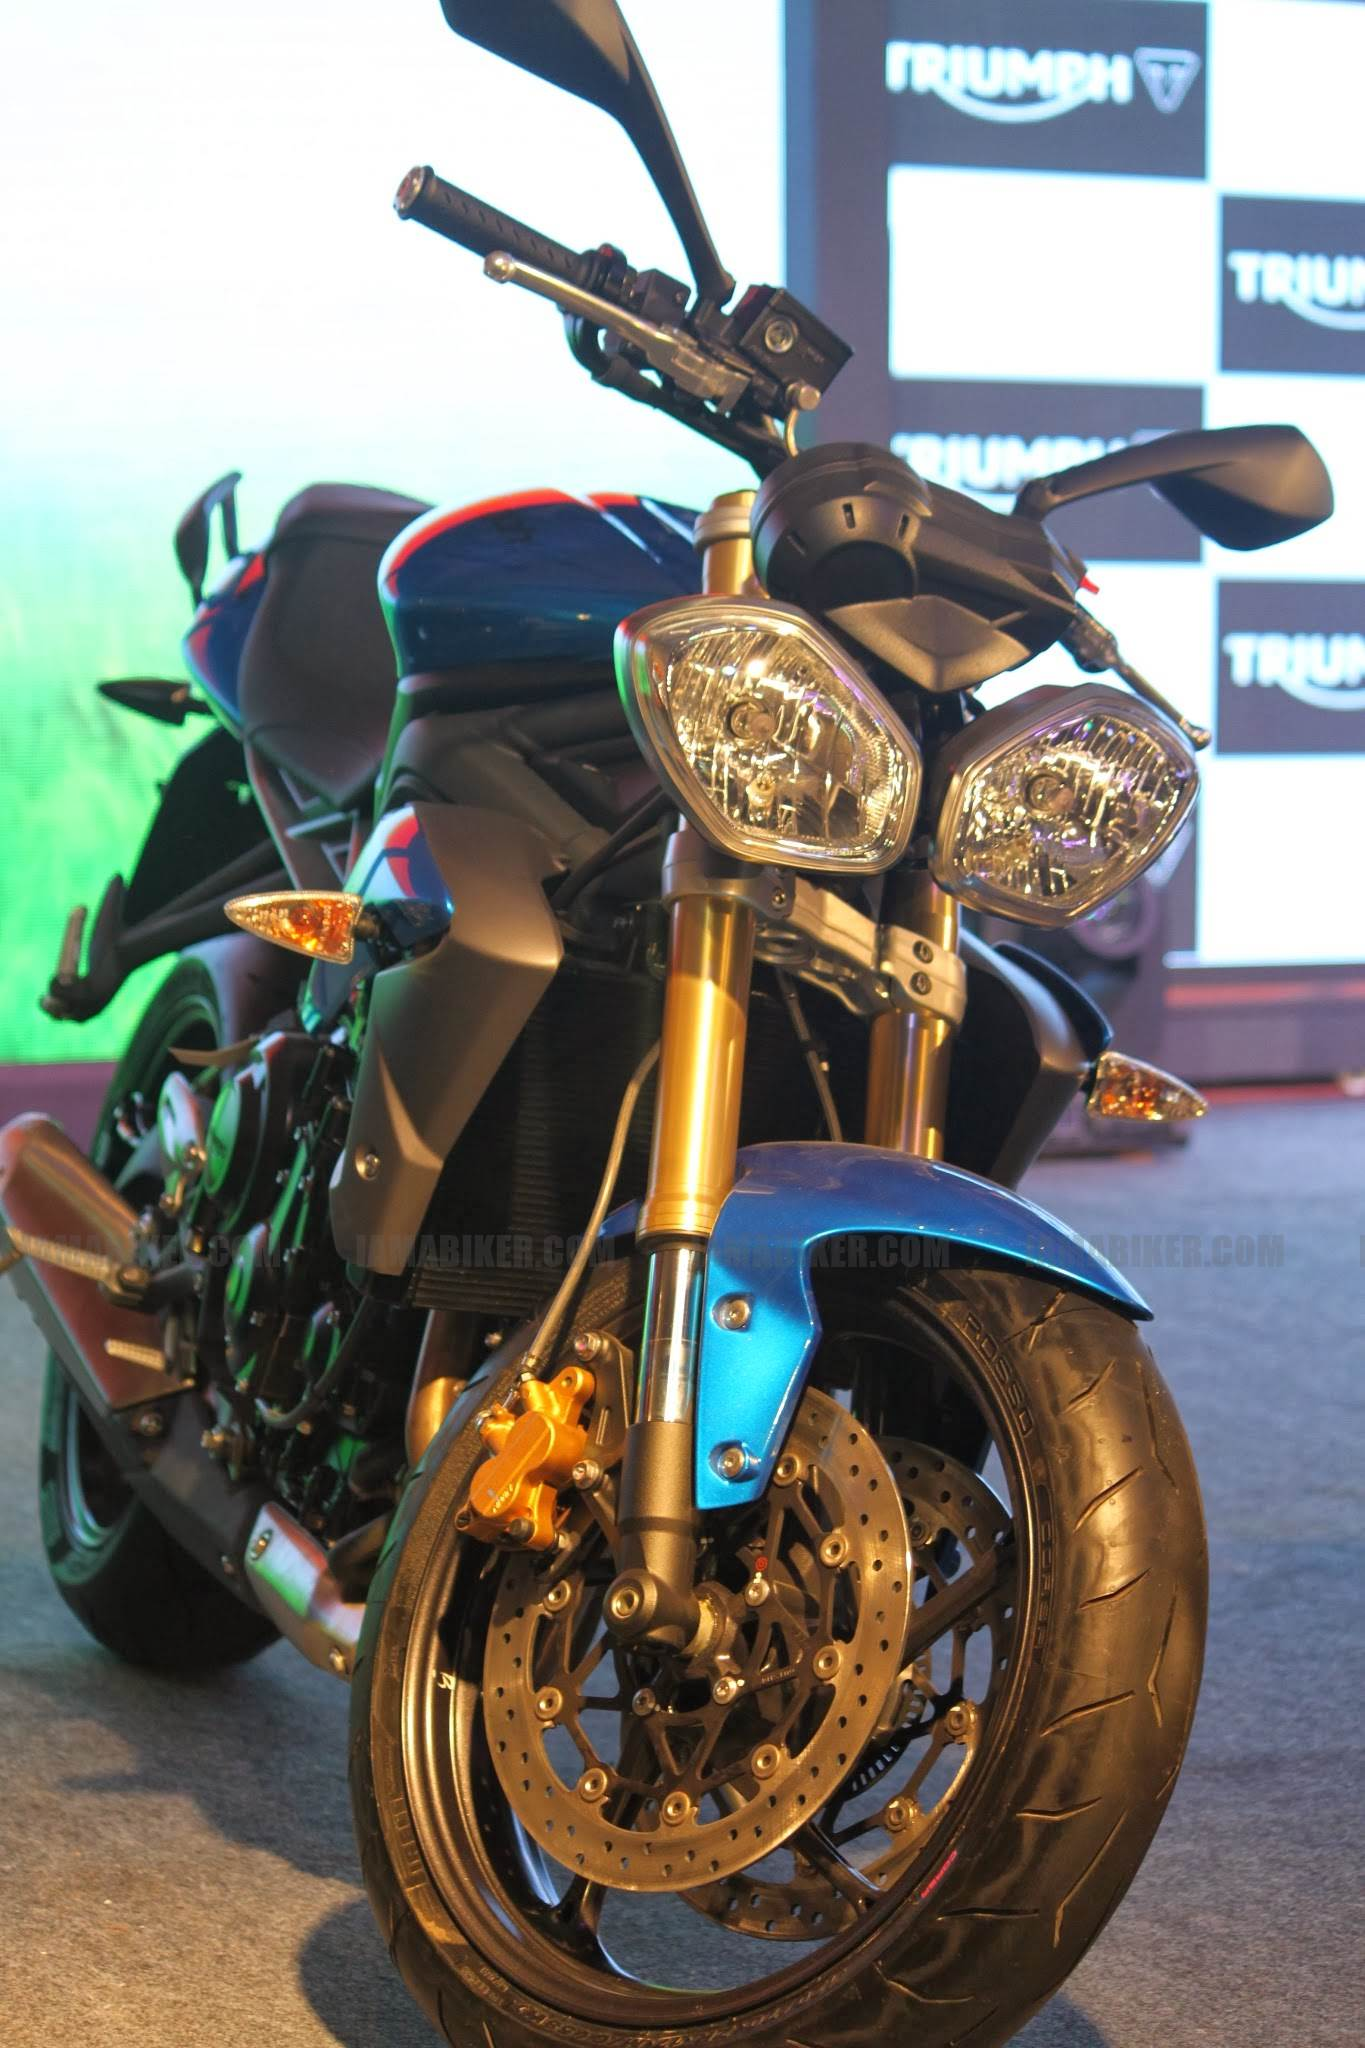 triumph motorcycles india launch - 37